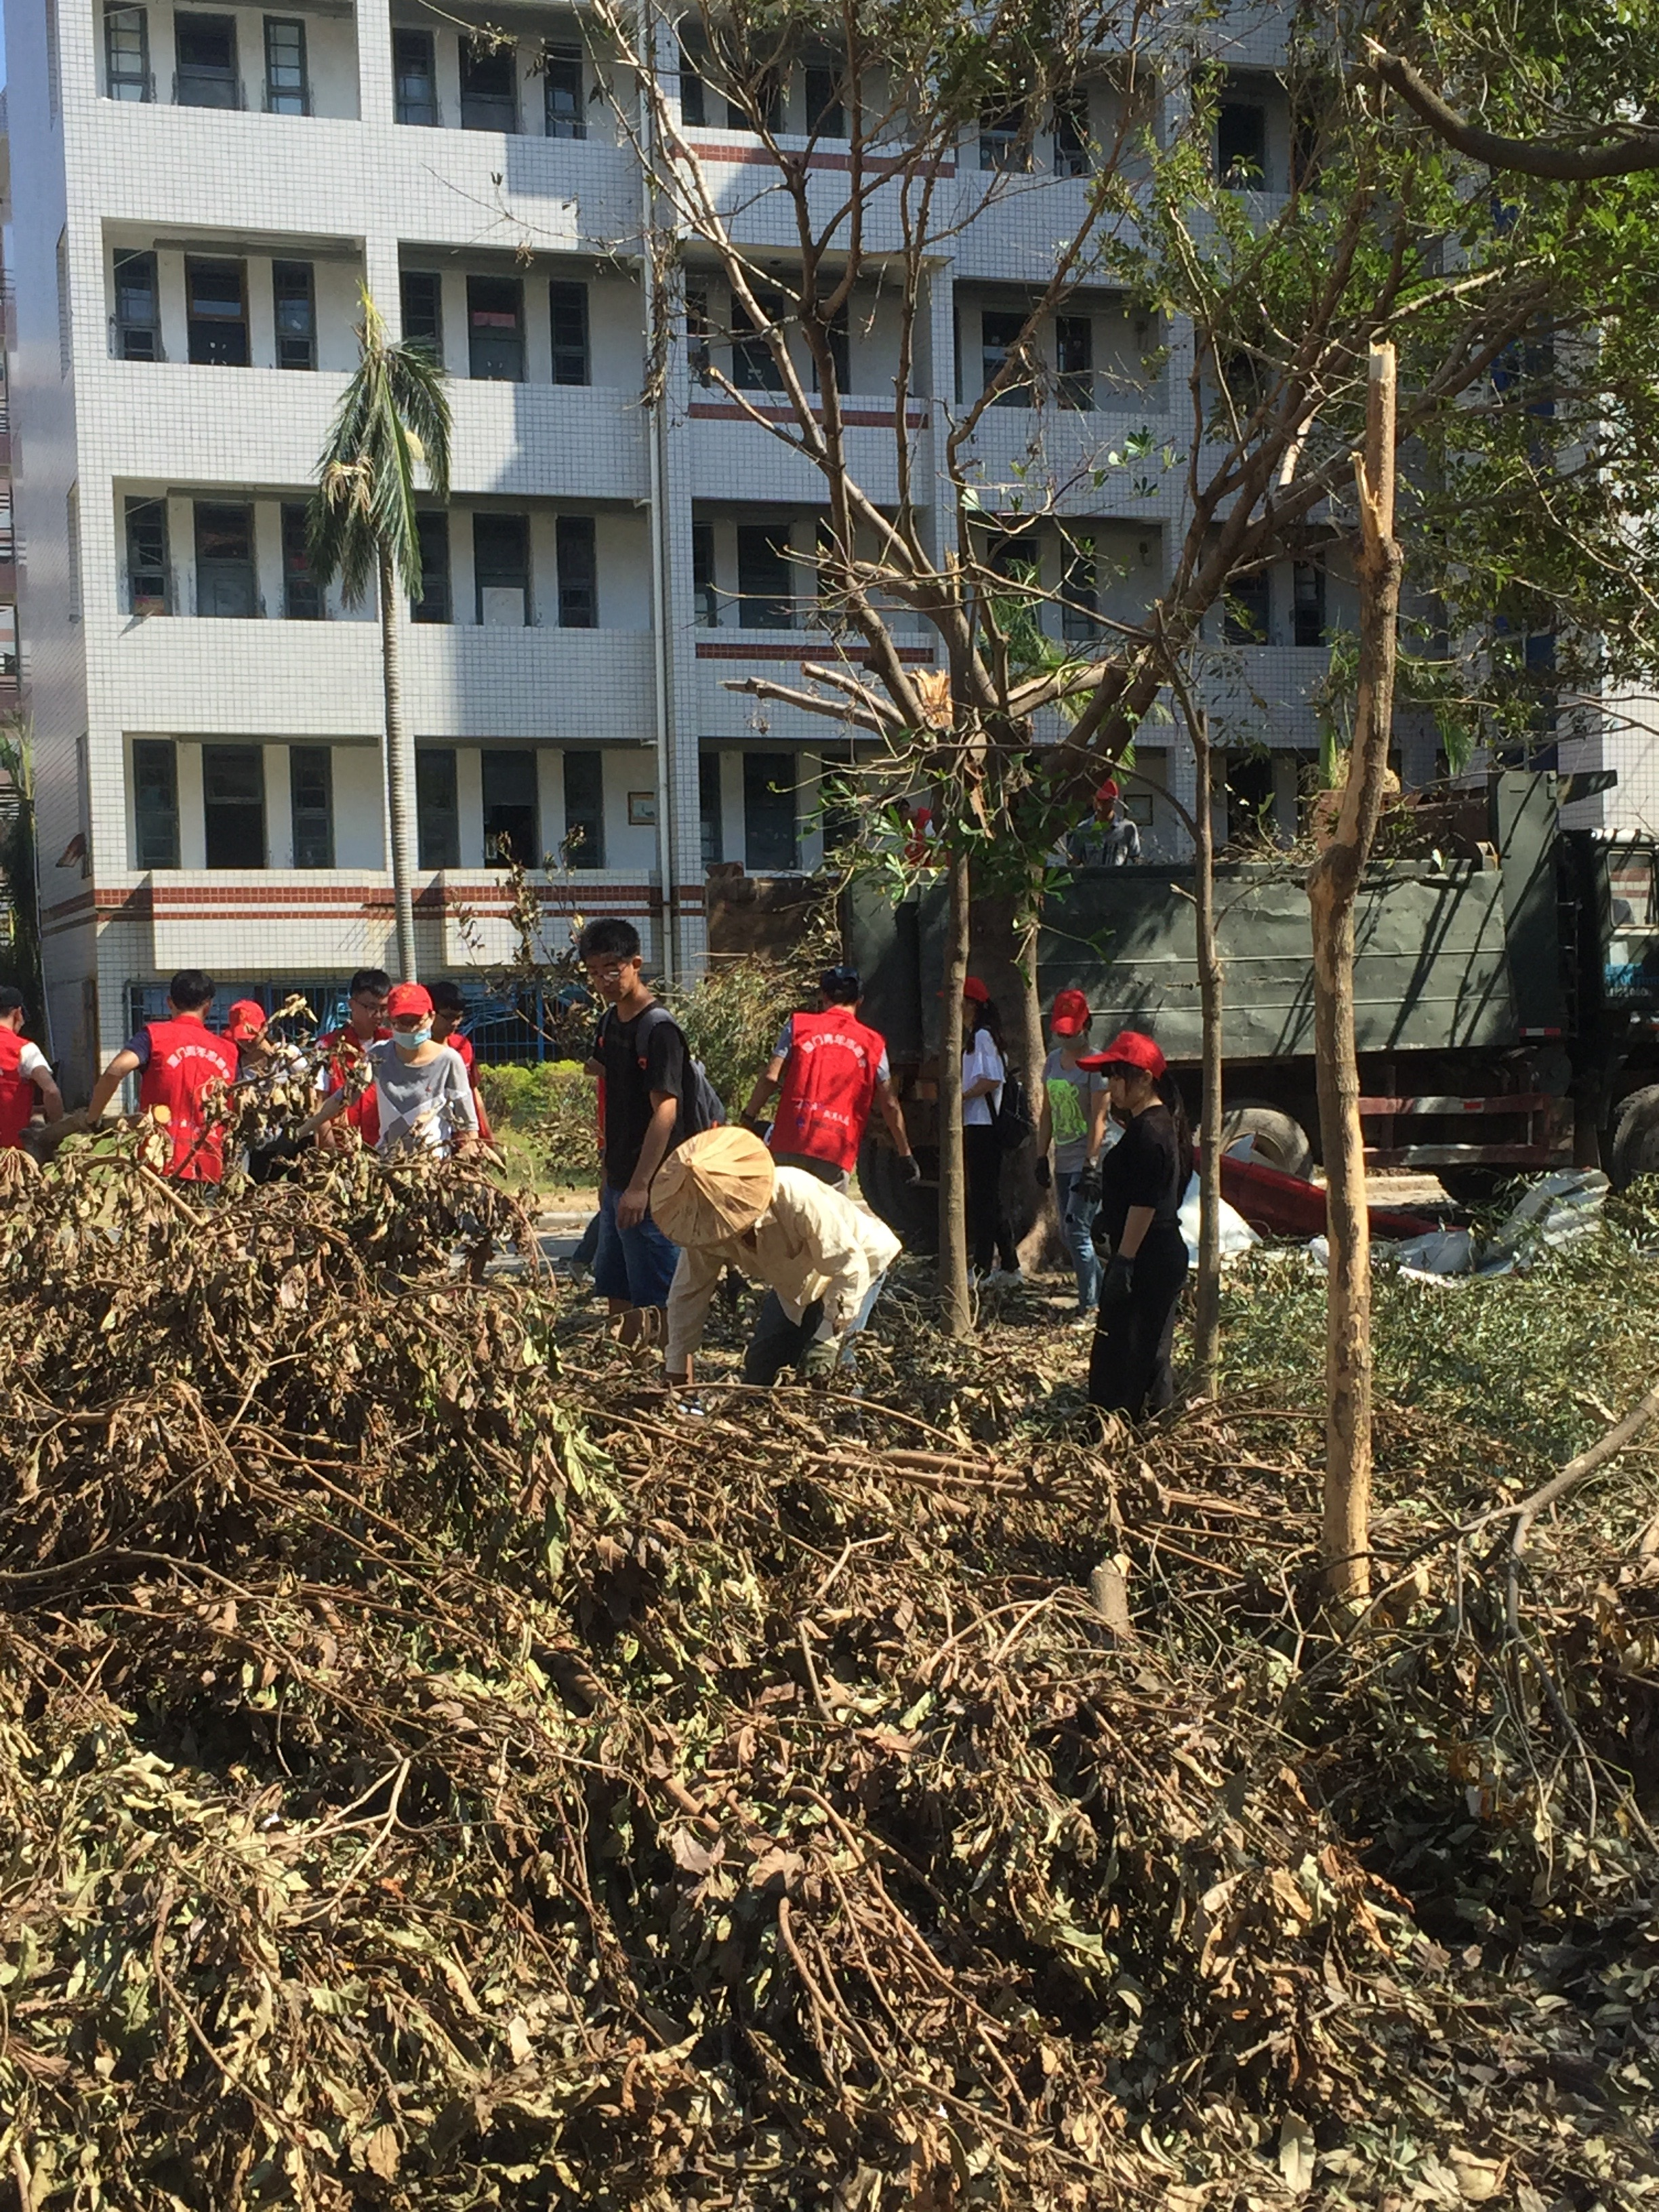 Some volunteer group already had red vests and hats and you could see them all over the campus cleaning up the trees.